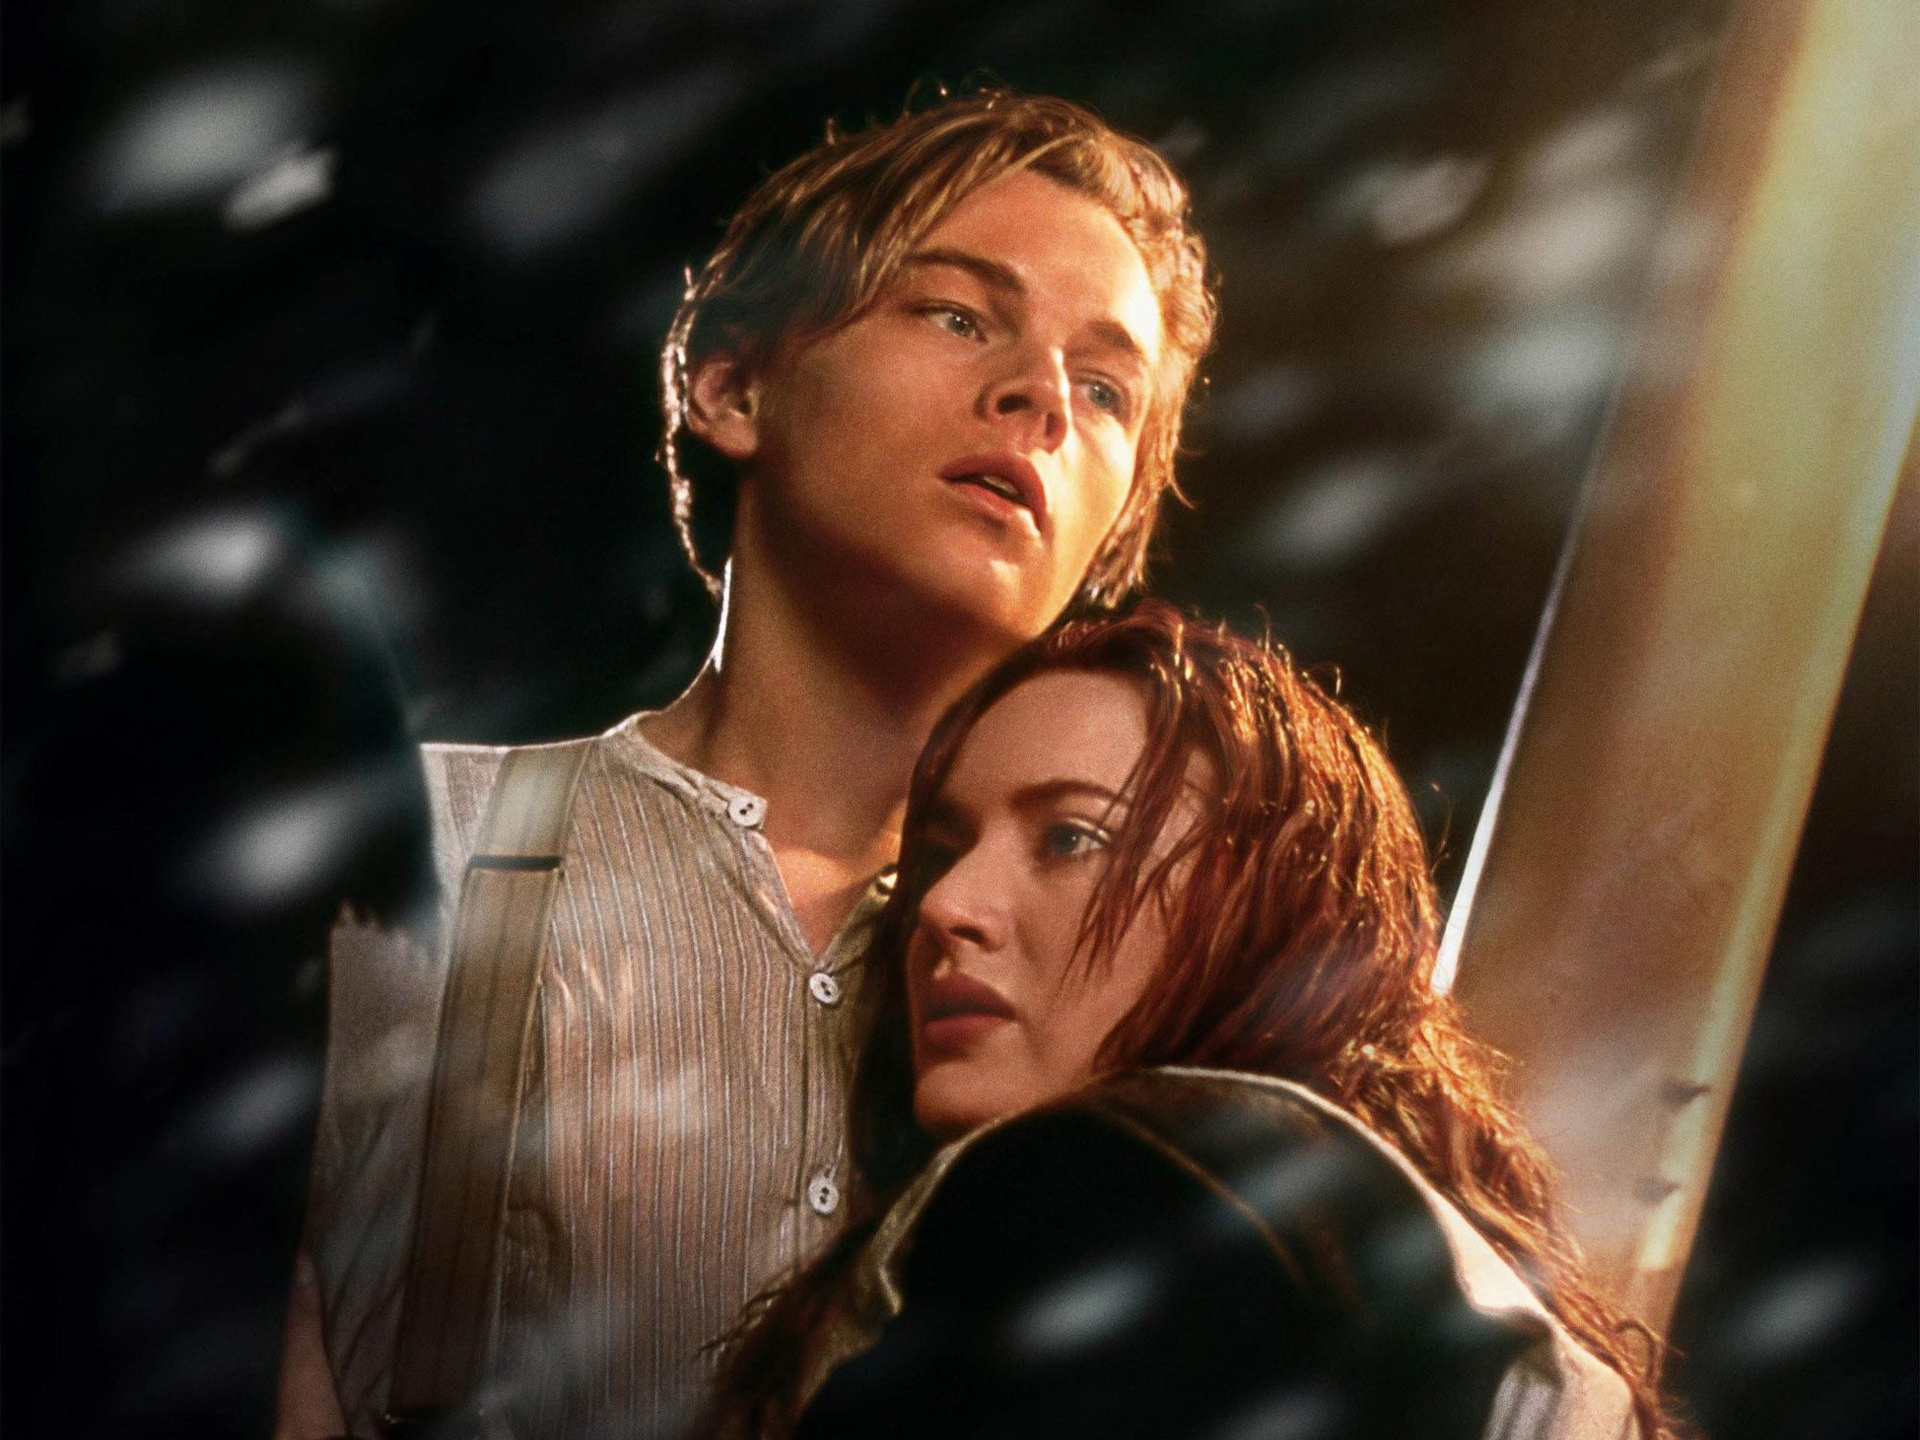 Wallpaper Leonardo Dicaprio And Kate Winslet In Titanic 1920x1440 Hd